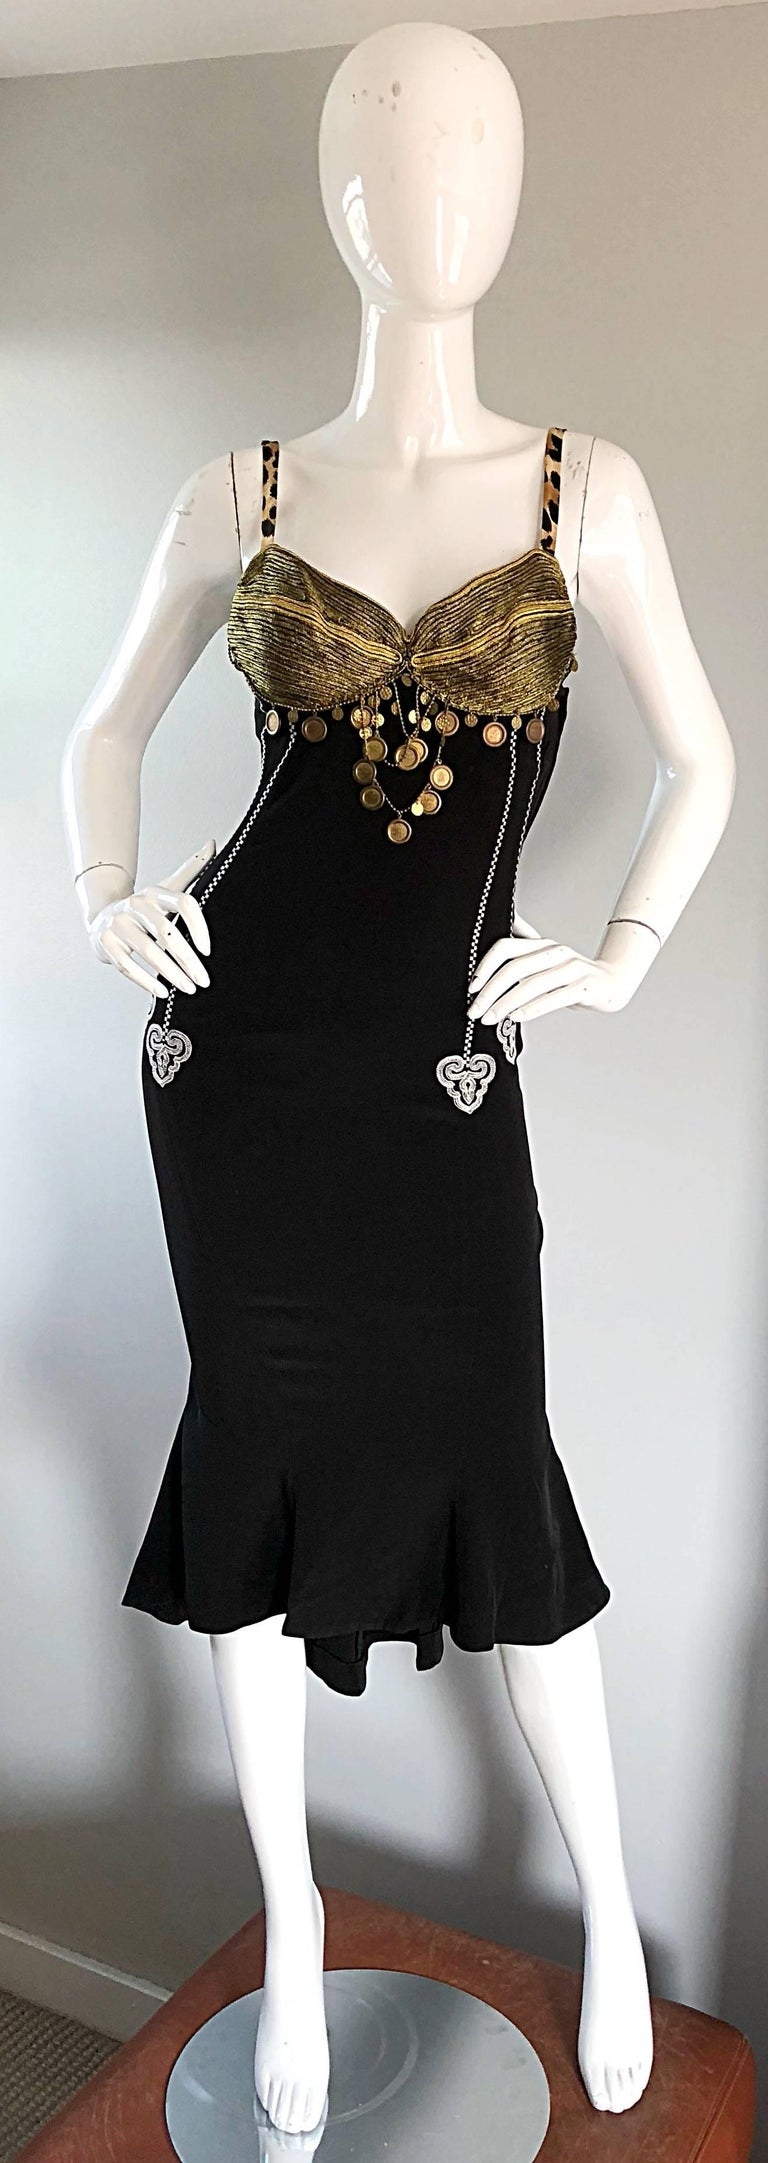 1980s Rifat Ozbek Sz 8 Black White Leopard Print Coin Embellished Mermaid Dress In Excellent Condition For Sale In Chicago, IL